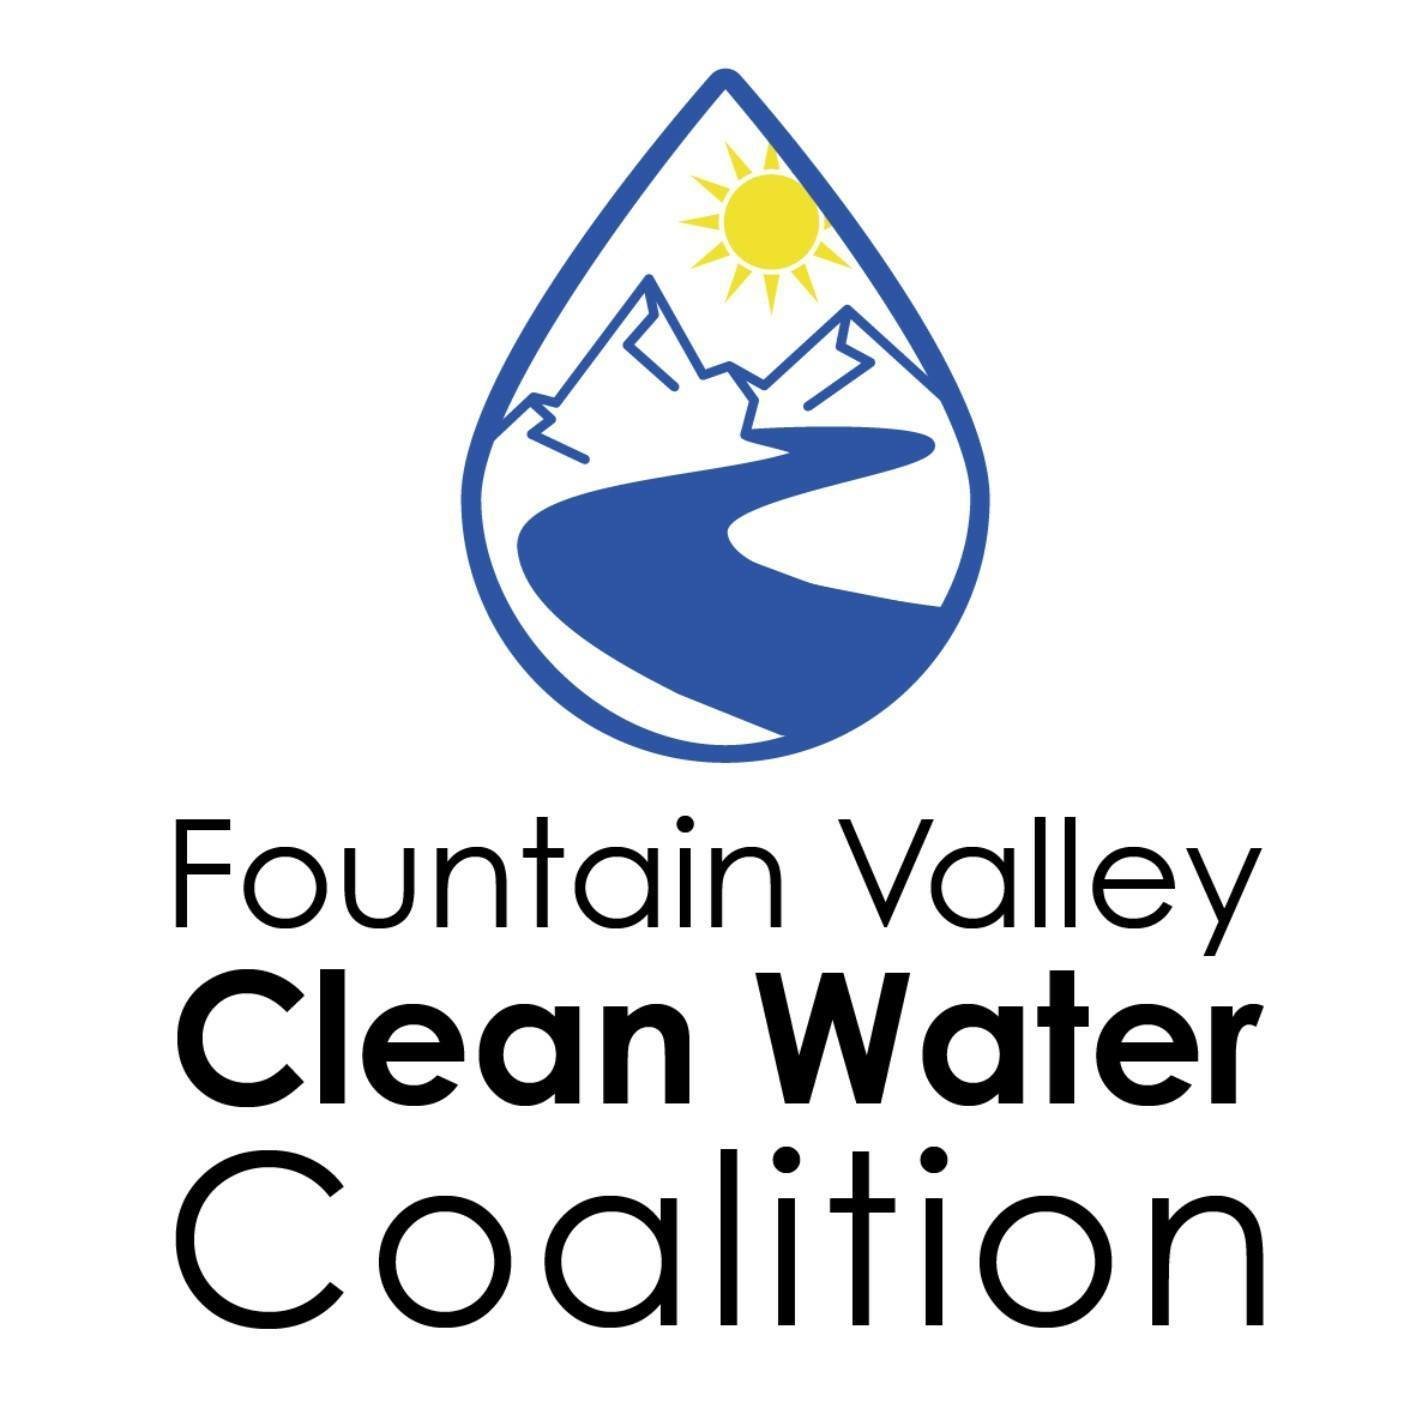 Fountain Valley Clean Water Coalition logo